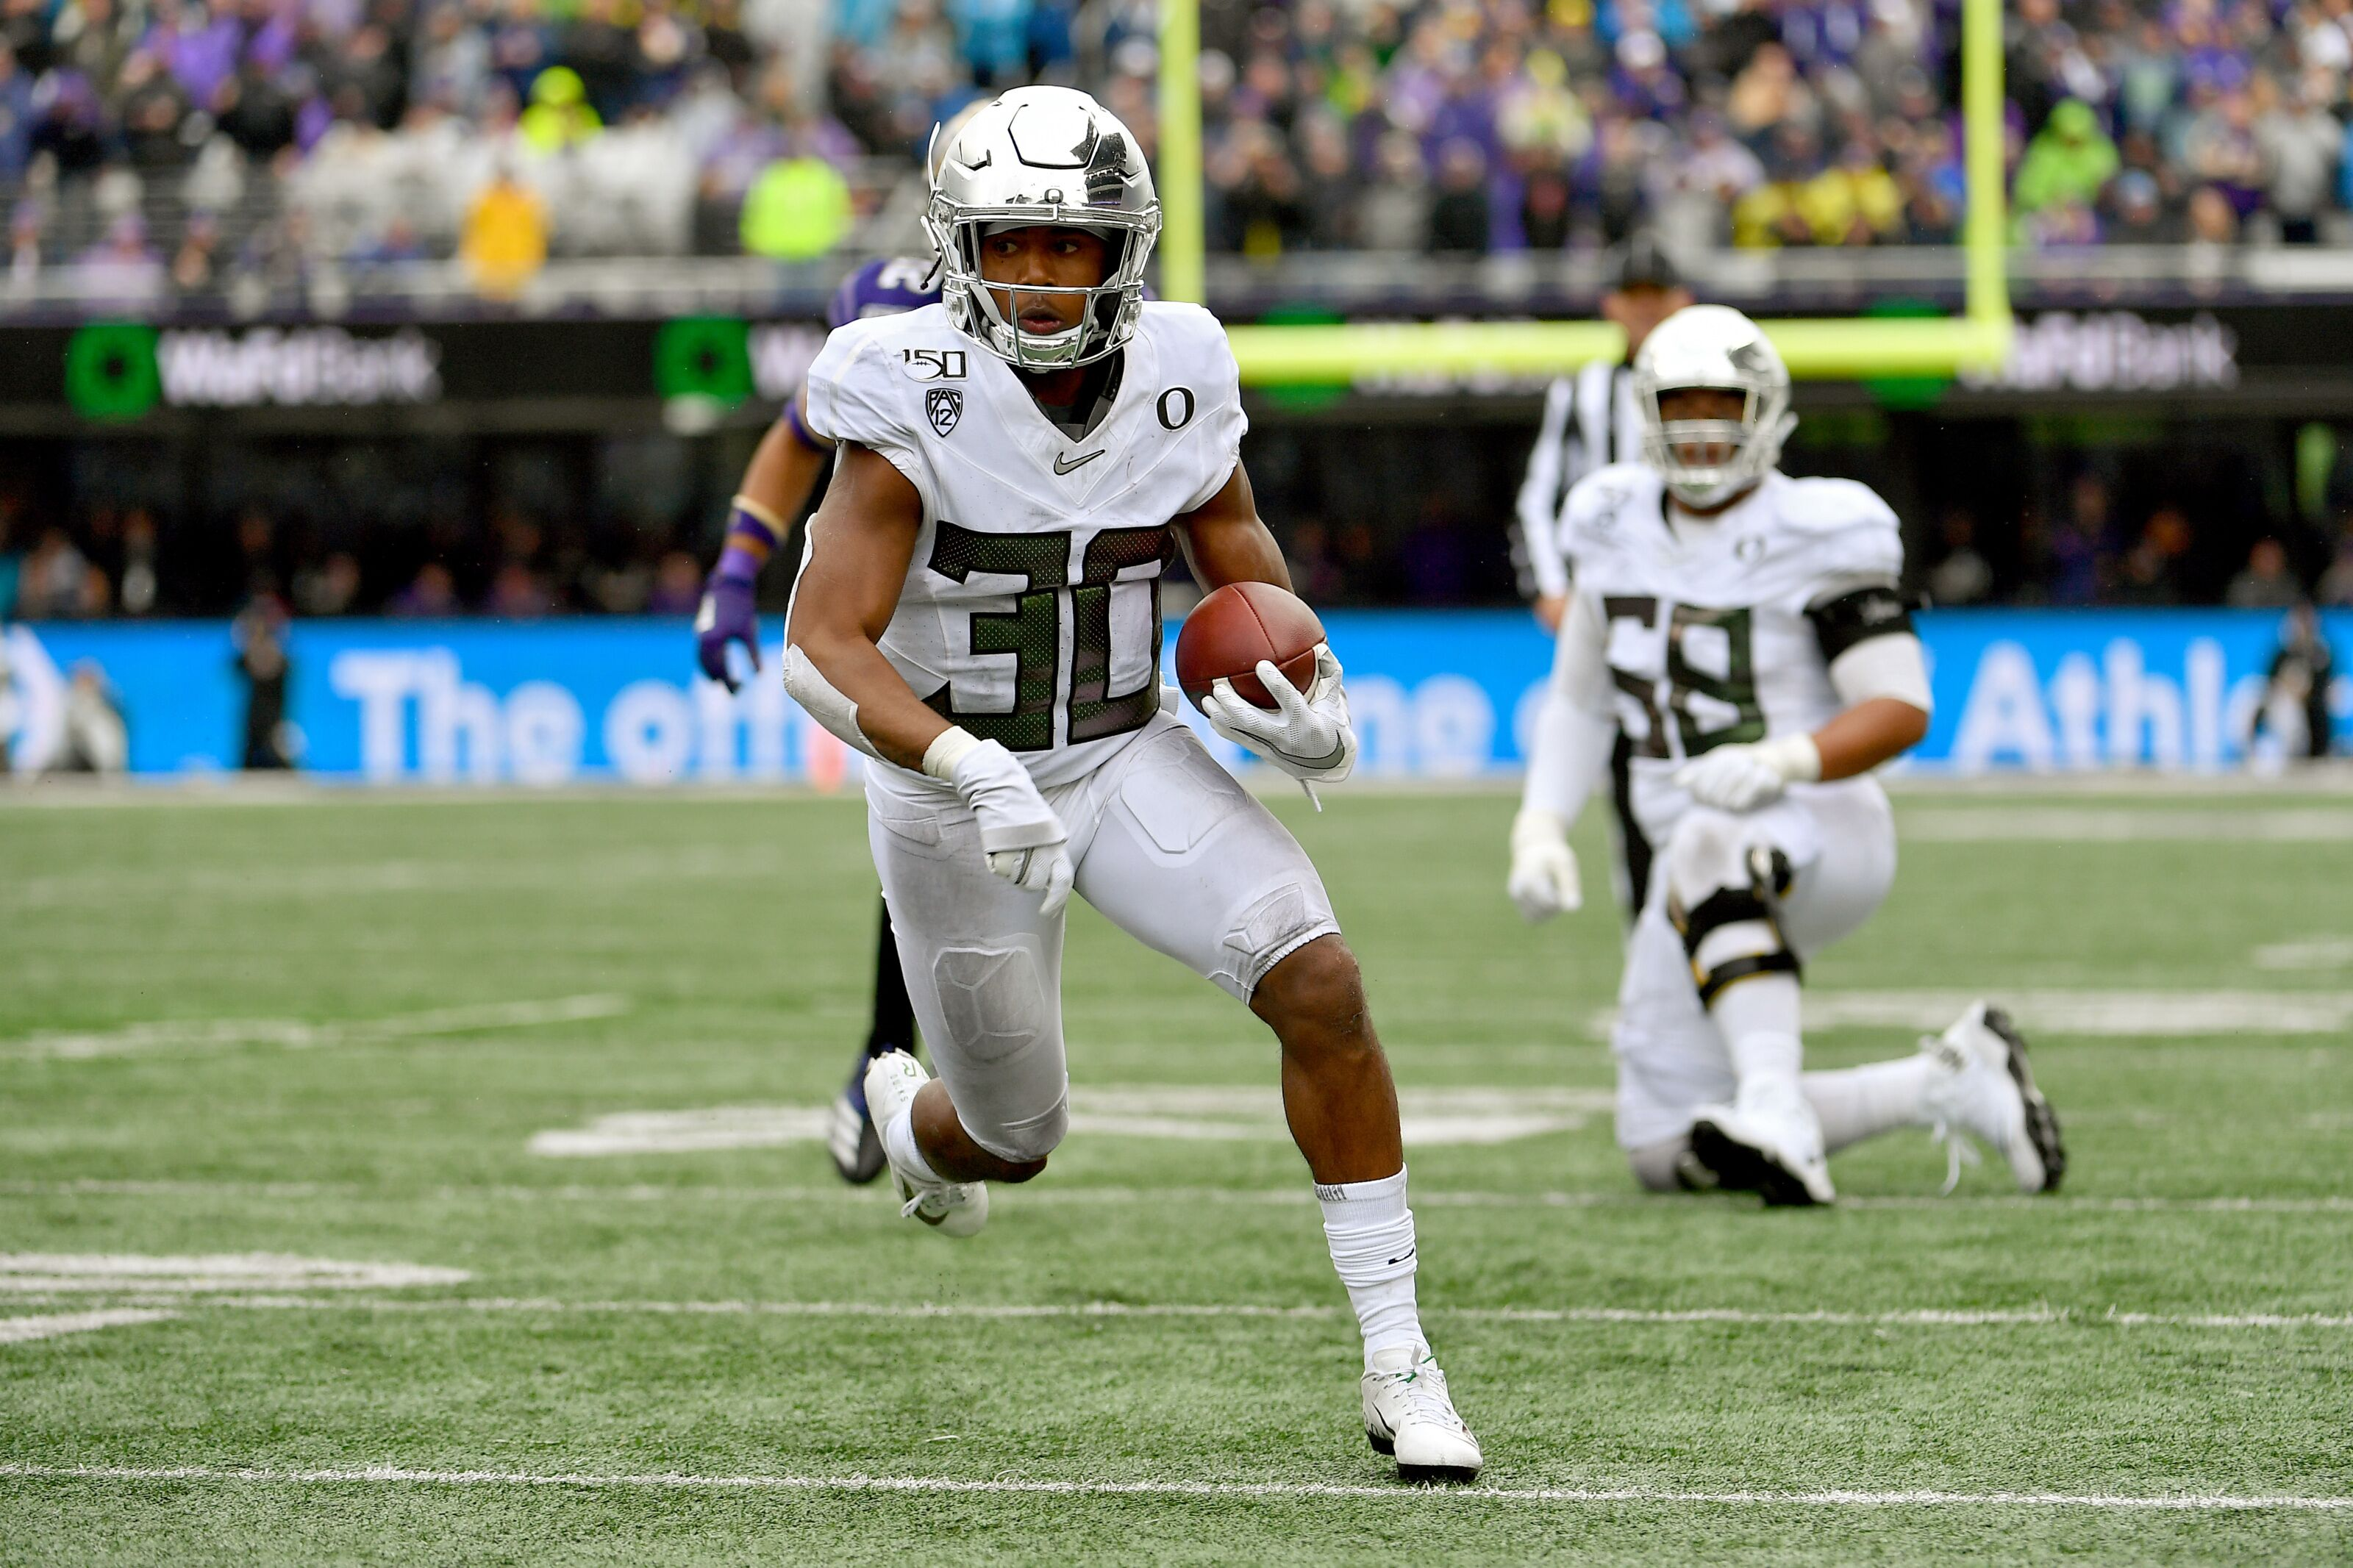 Oregon completes comeback vs. Washington to effectively clinch Pac-12 North